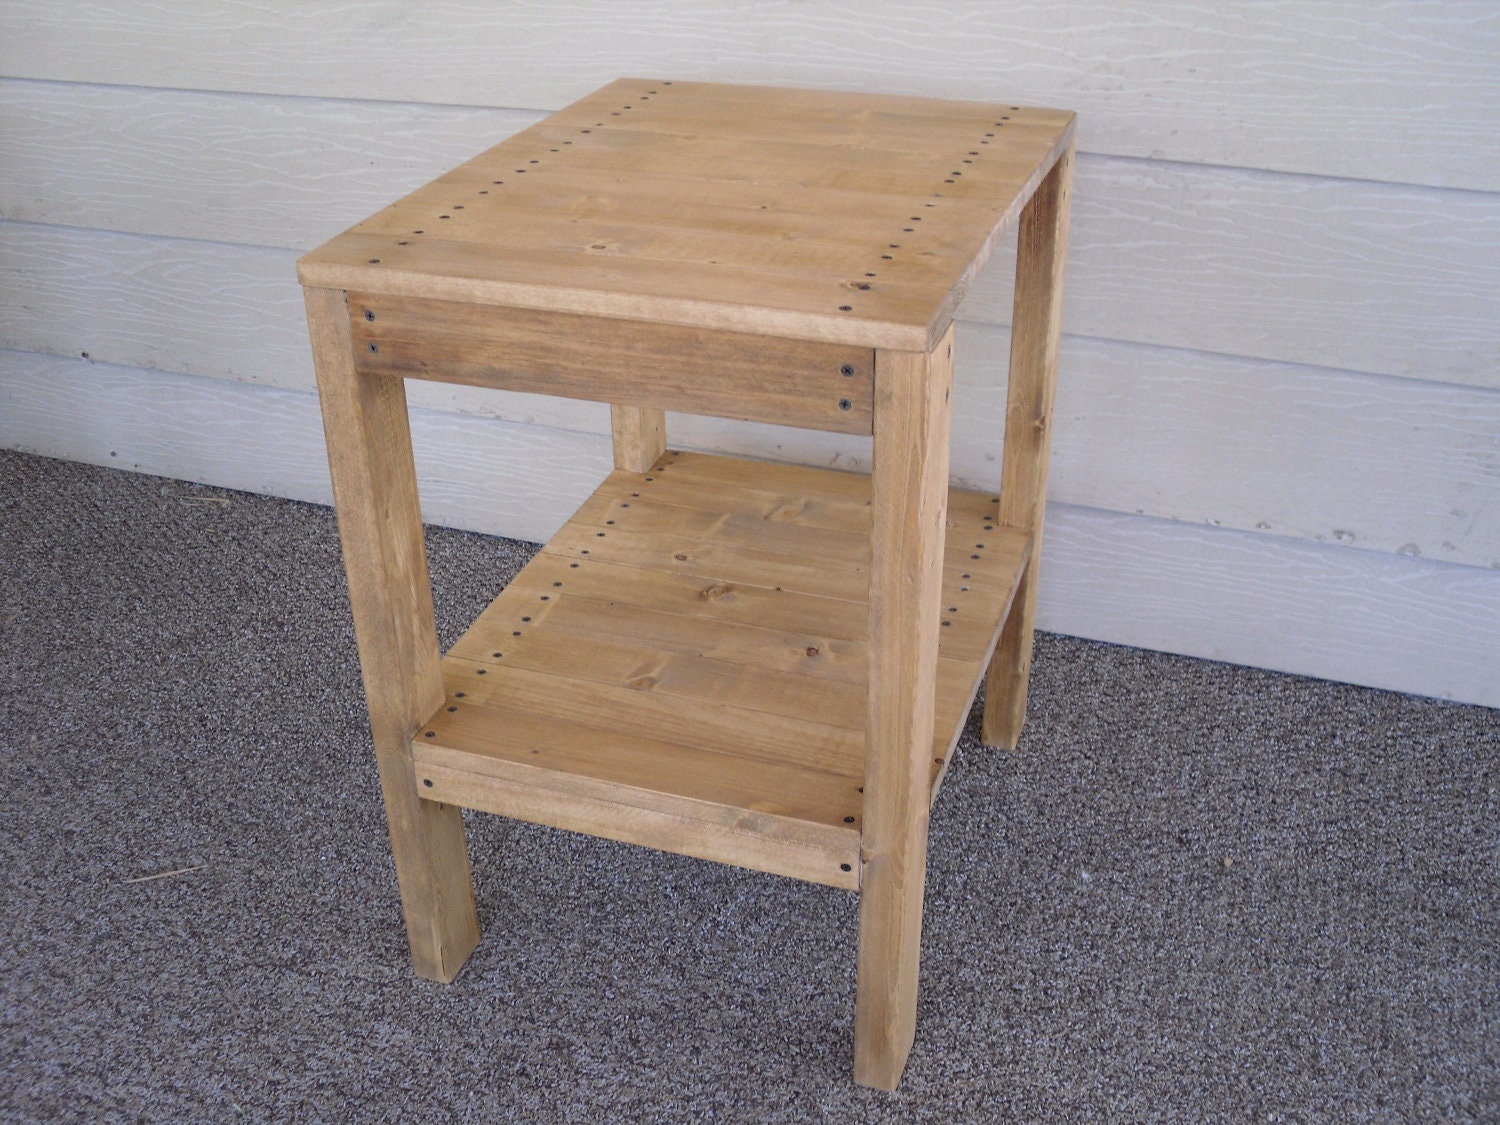 Plans for a Simple End Table